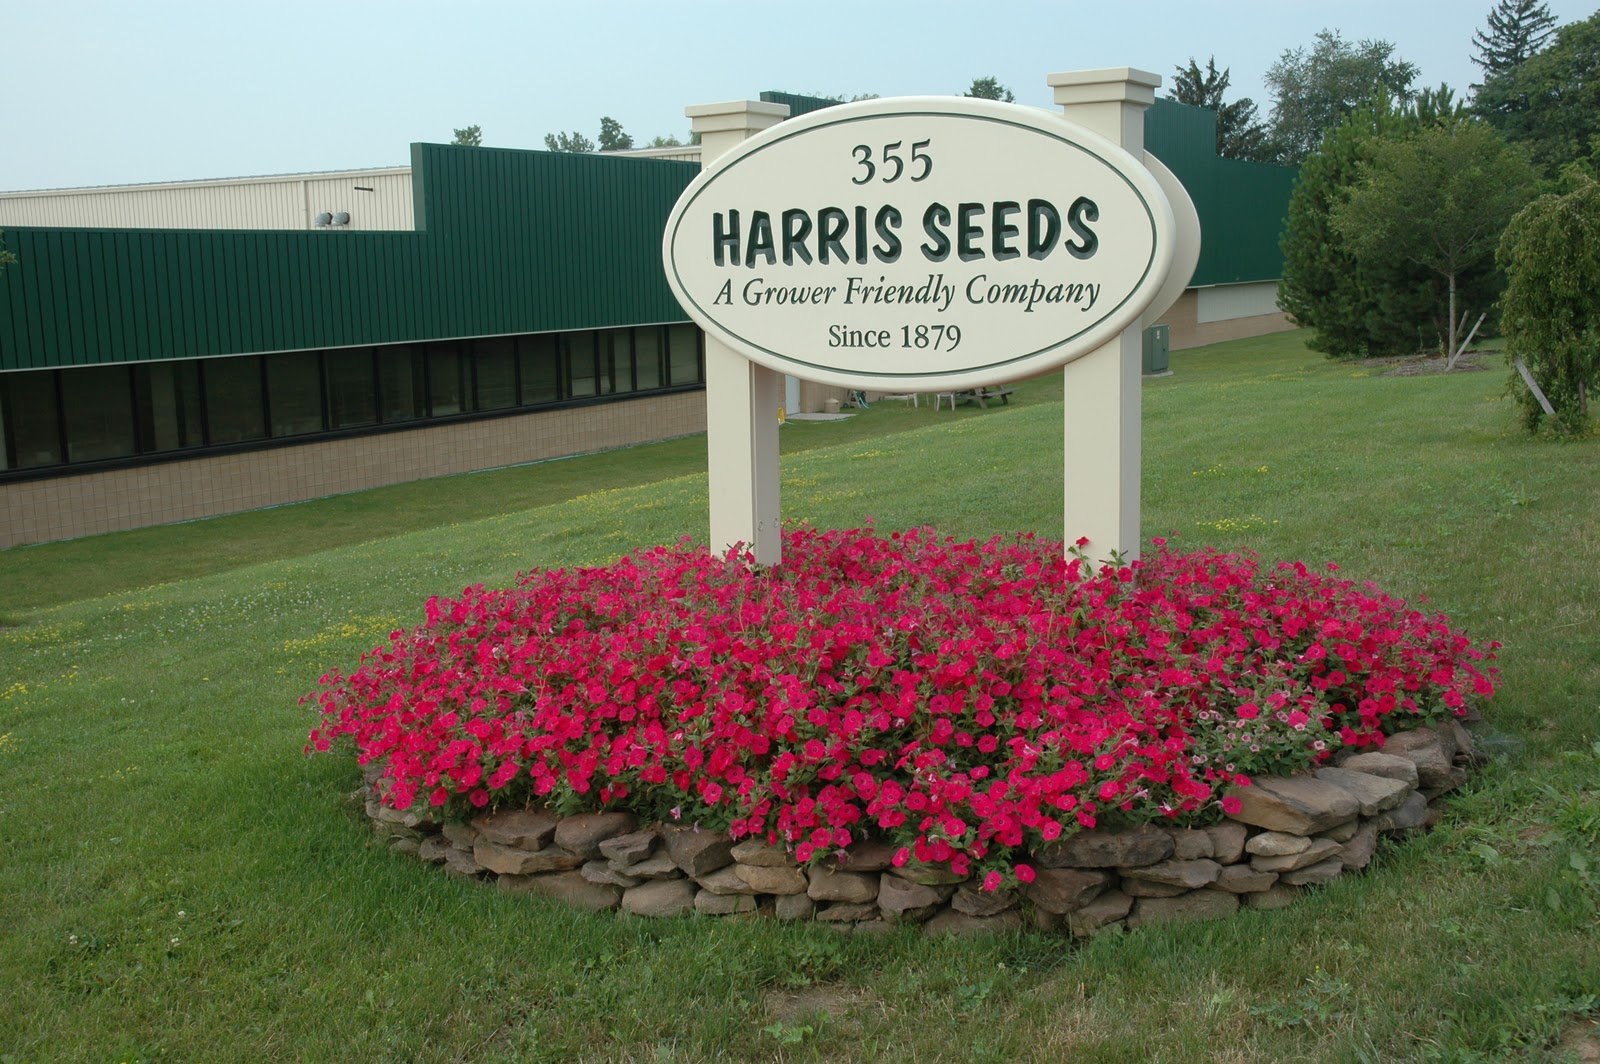 ... Itself Of Its Two Retail Home Garden Businesses: The Harris Seeds Garden  Stores In Rochester, NY; And The Harris Seeds Home Garden Mail Order Catalog  ...